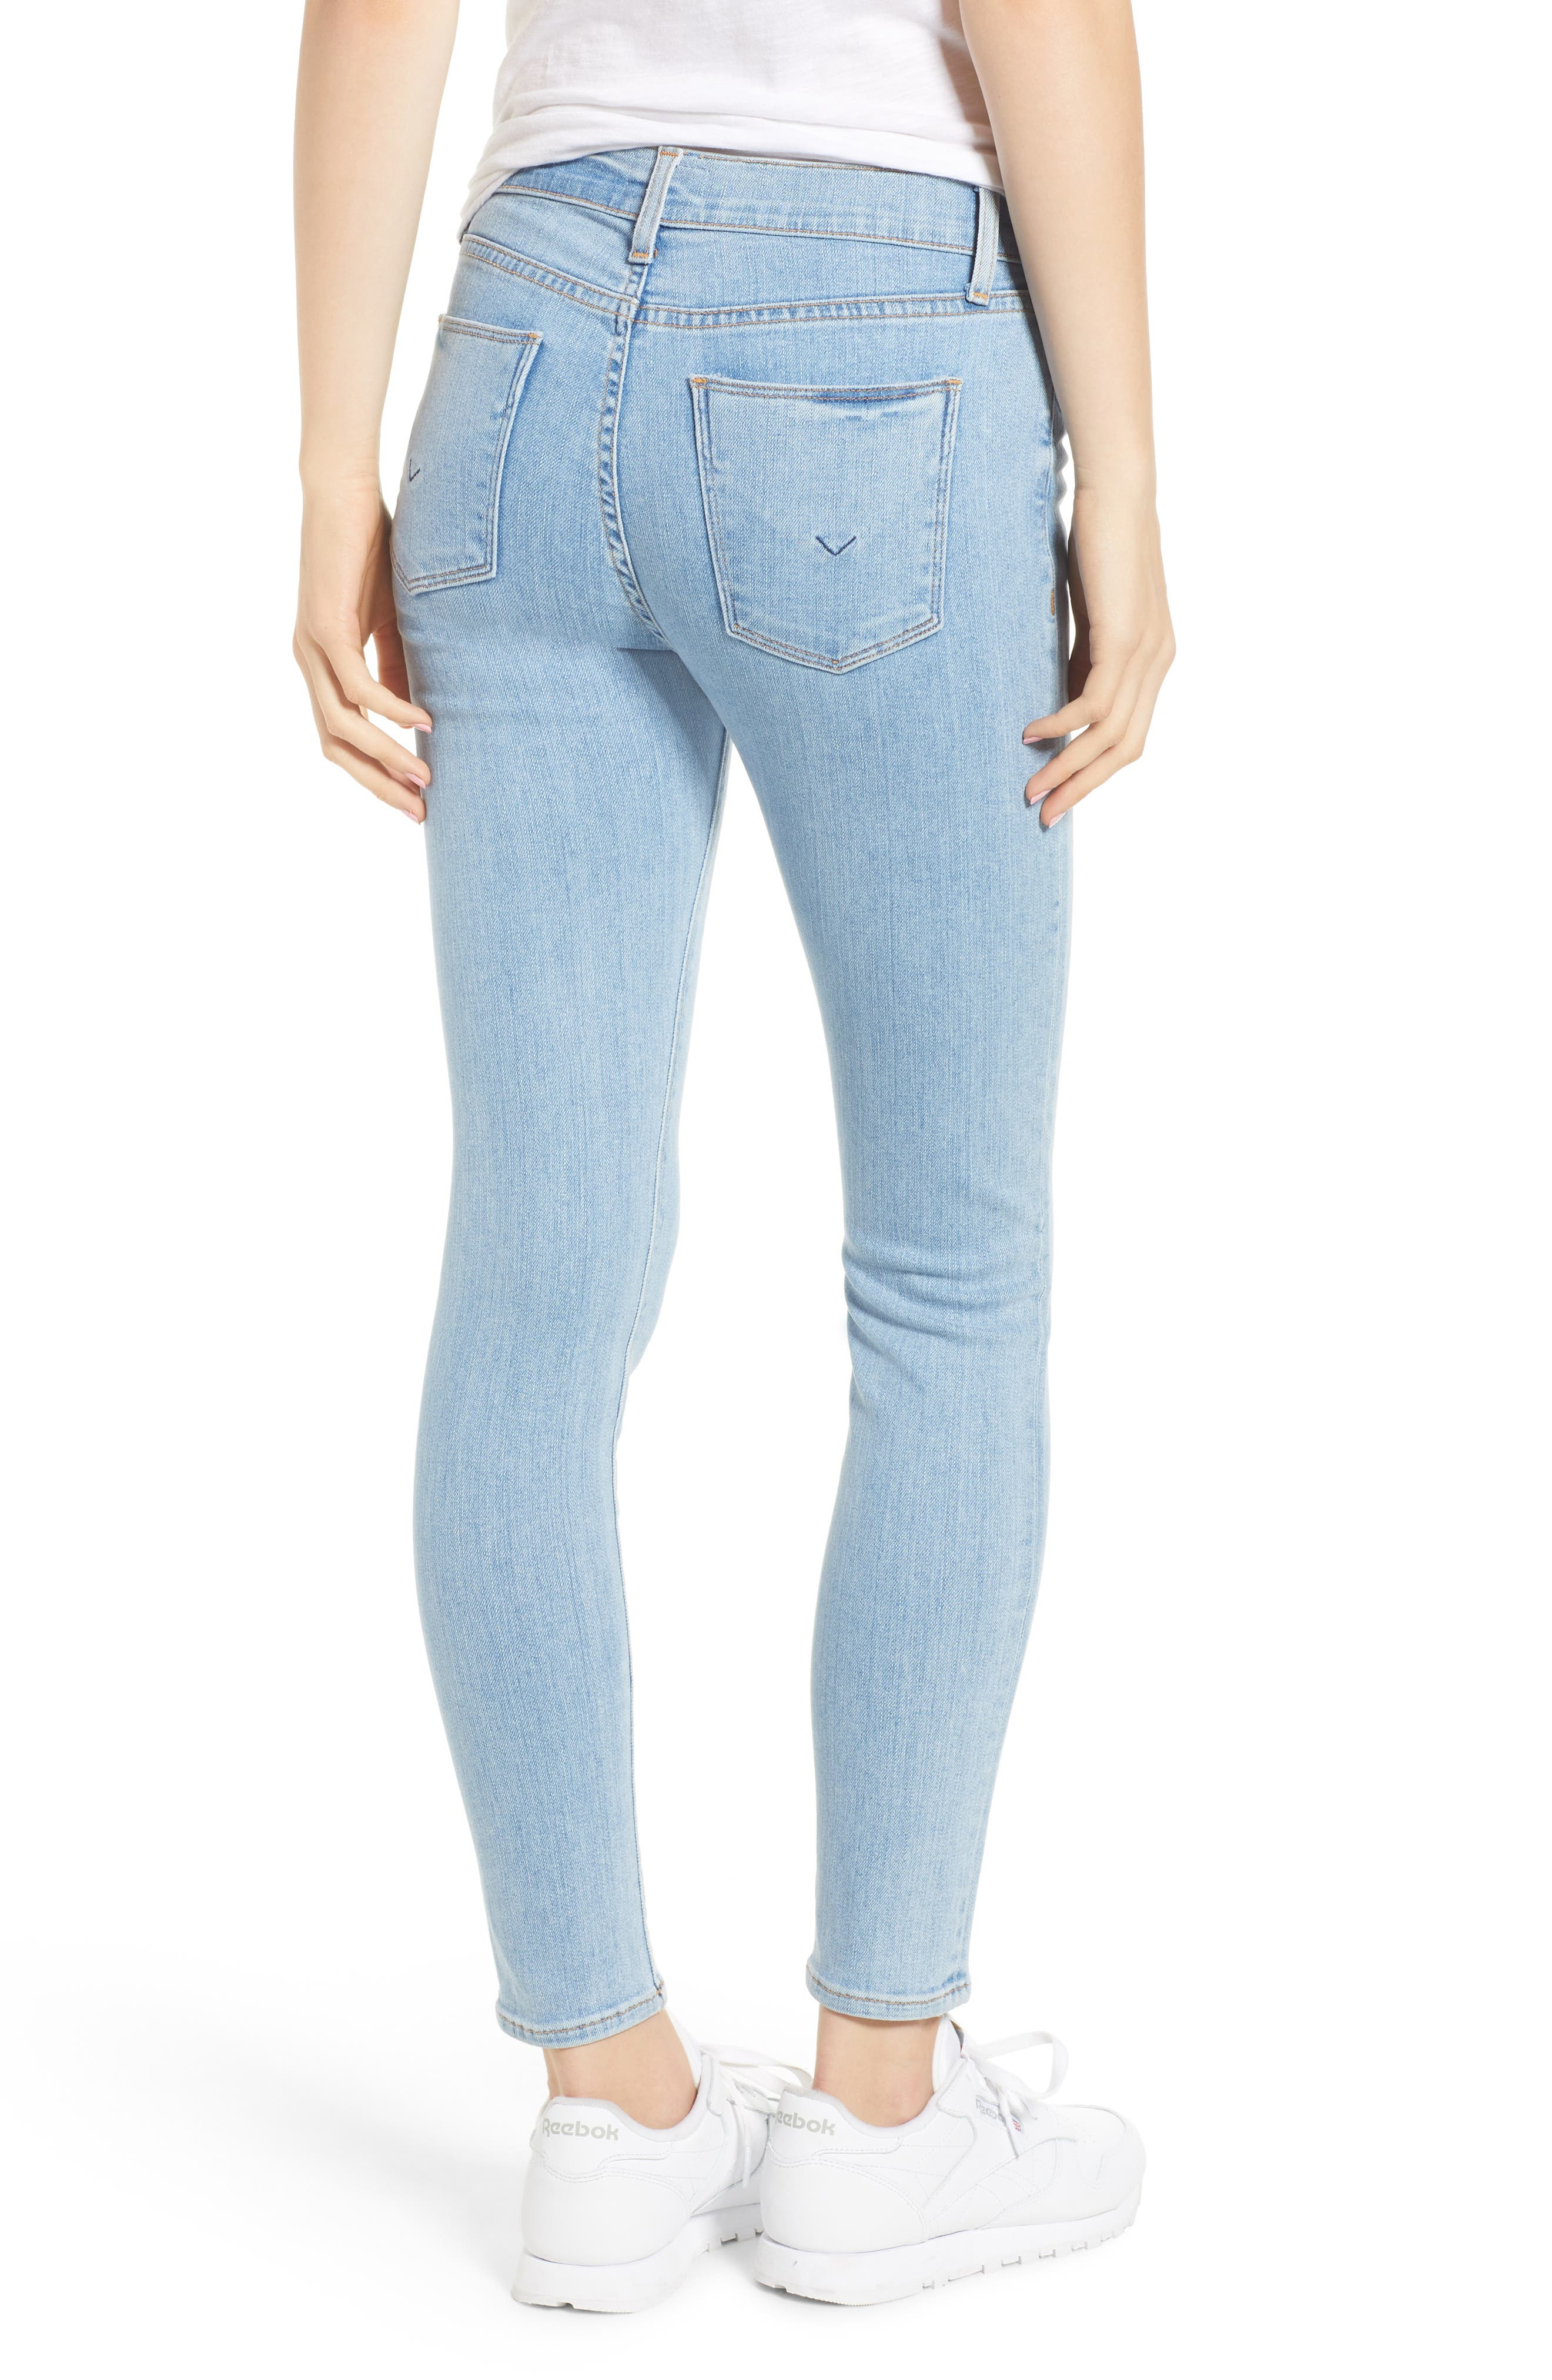 Barbara High Waist Super Skinny Jeans,                             Alternate thumbnail 2, color,                             Nymph